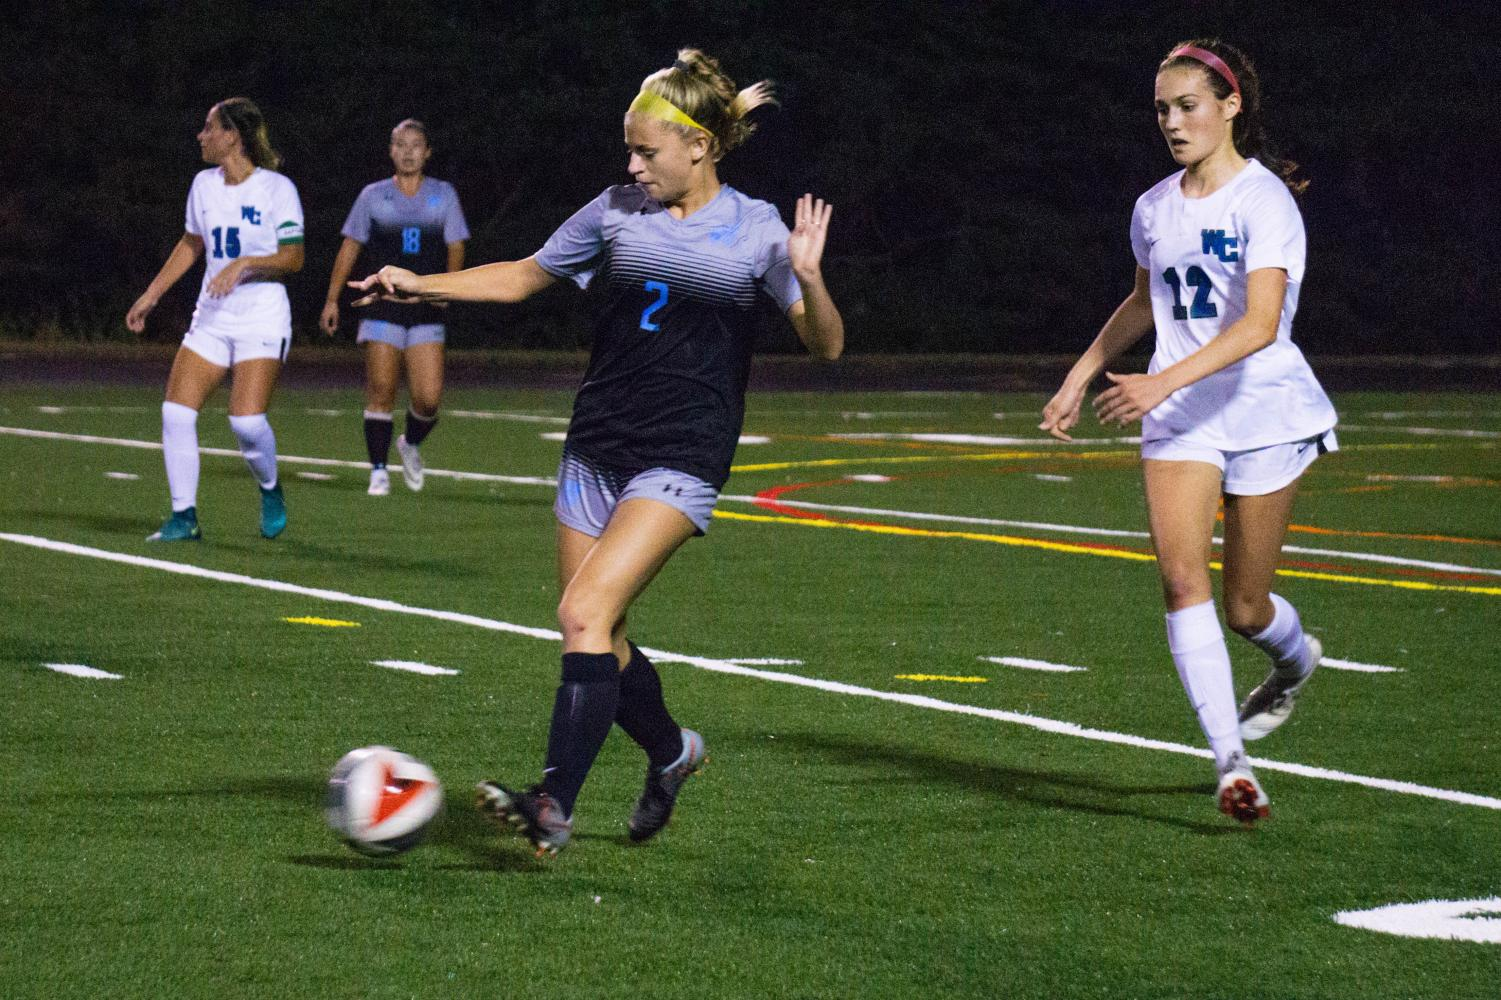 Midfielder Kasey Donaldson plays a pass in girls soccer's Monday night game against Churchill. Girls soccer was one of the first teams to have a home game on the newly finished turf field. Photo by Lukas Gates.